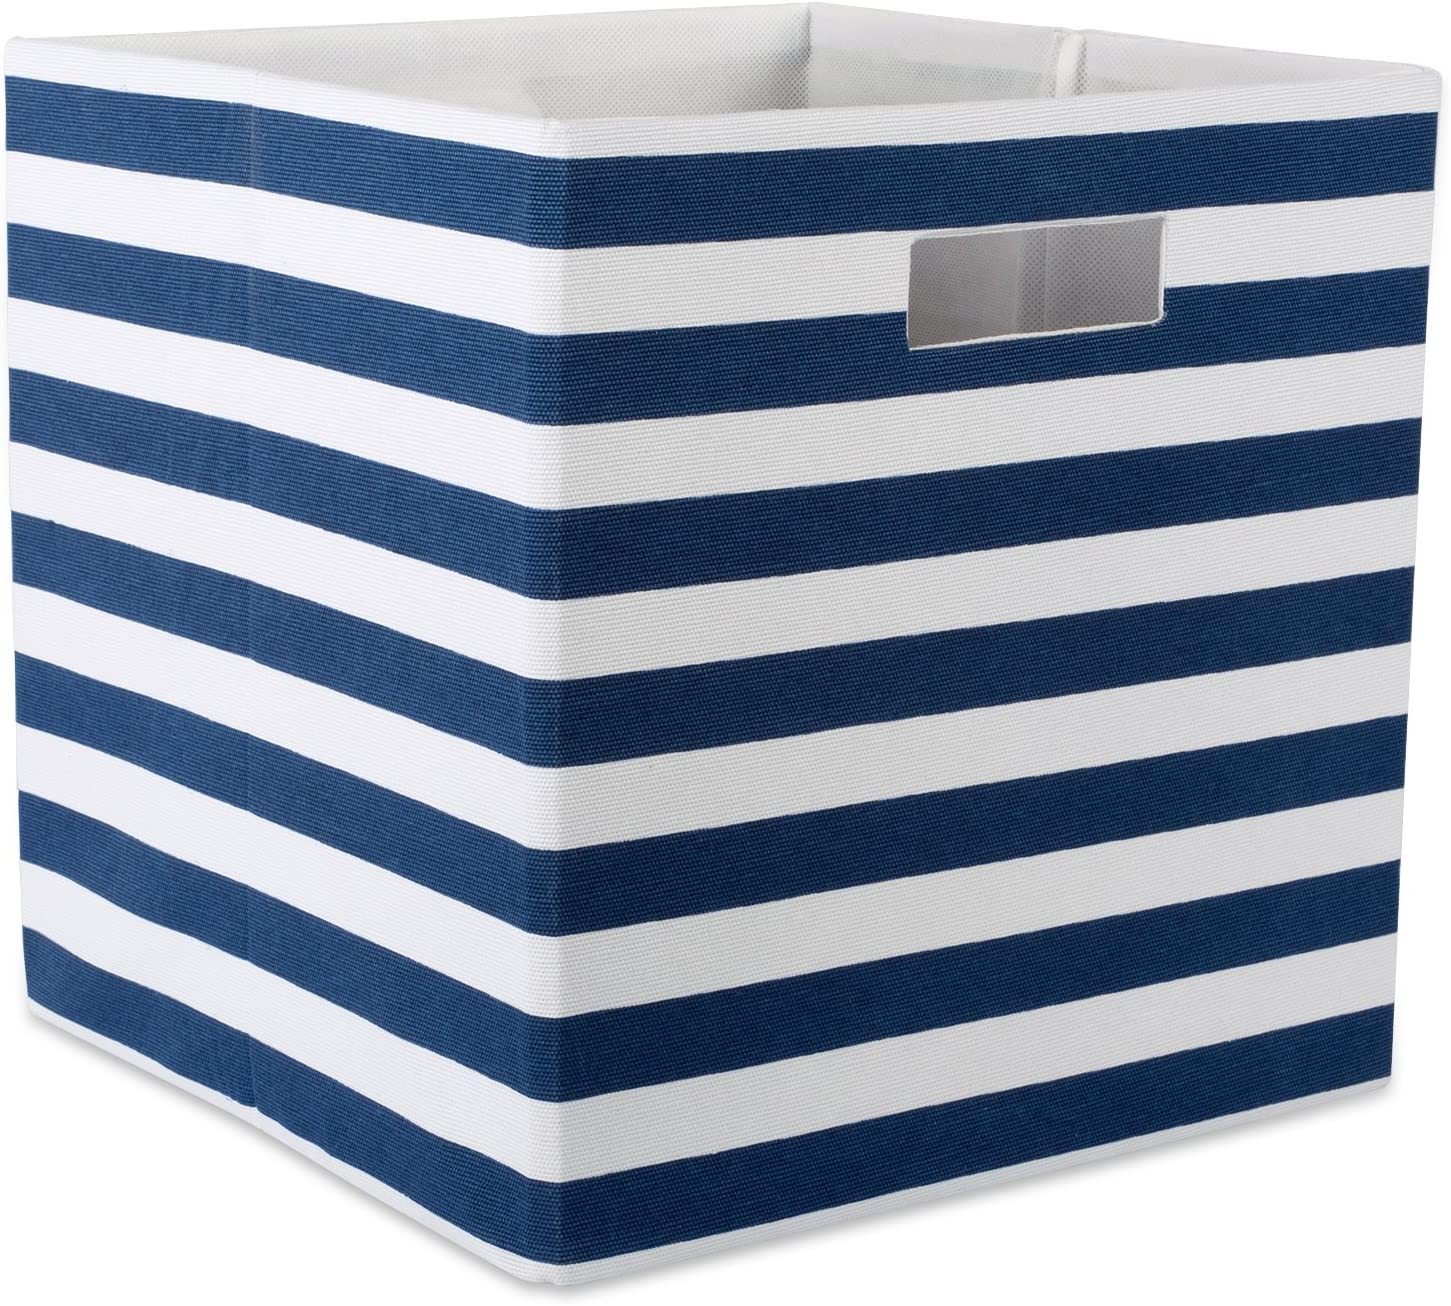 DII Foldable Fabric Storage Container 13 x 13 x 13, Stripe Nautical Blue, Large